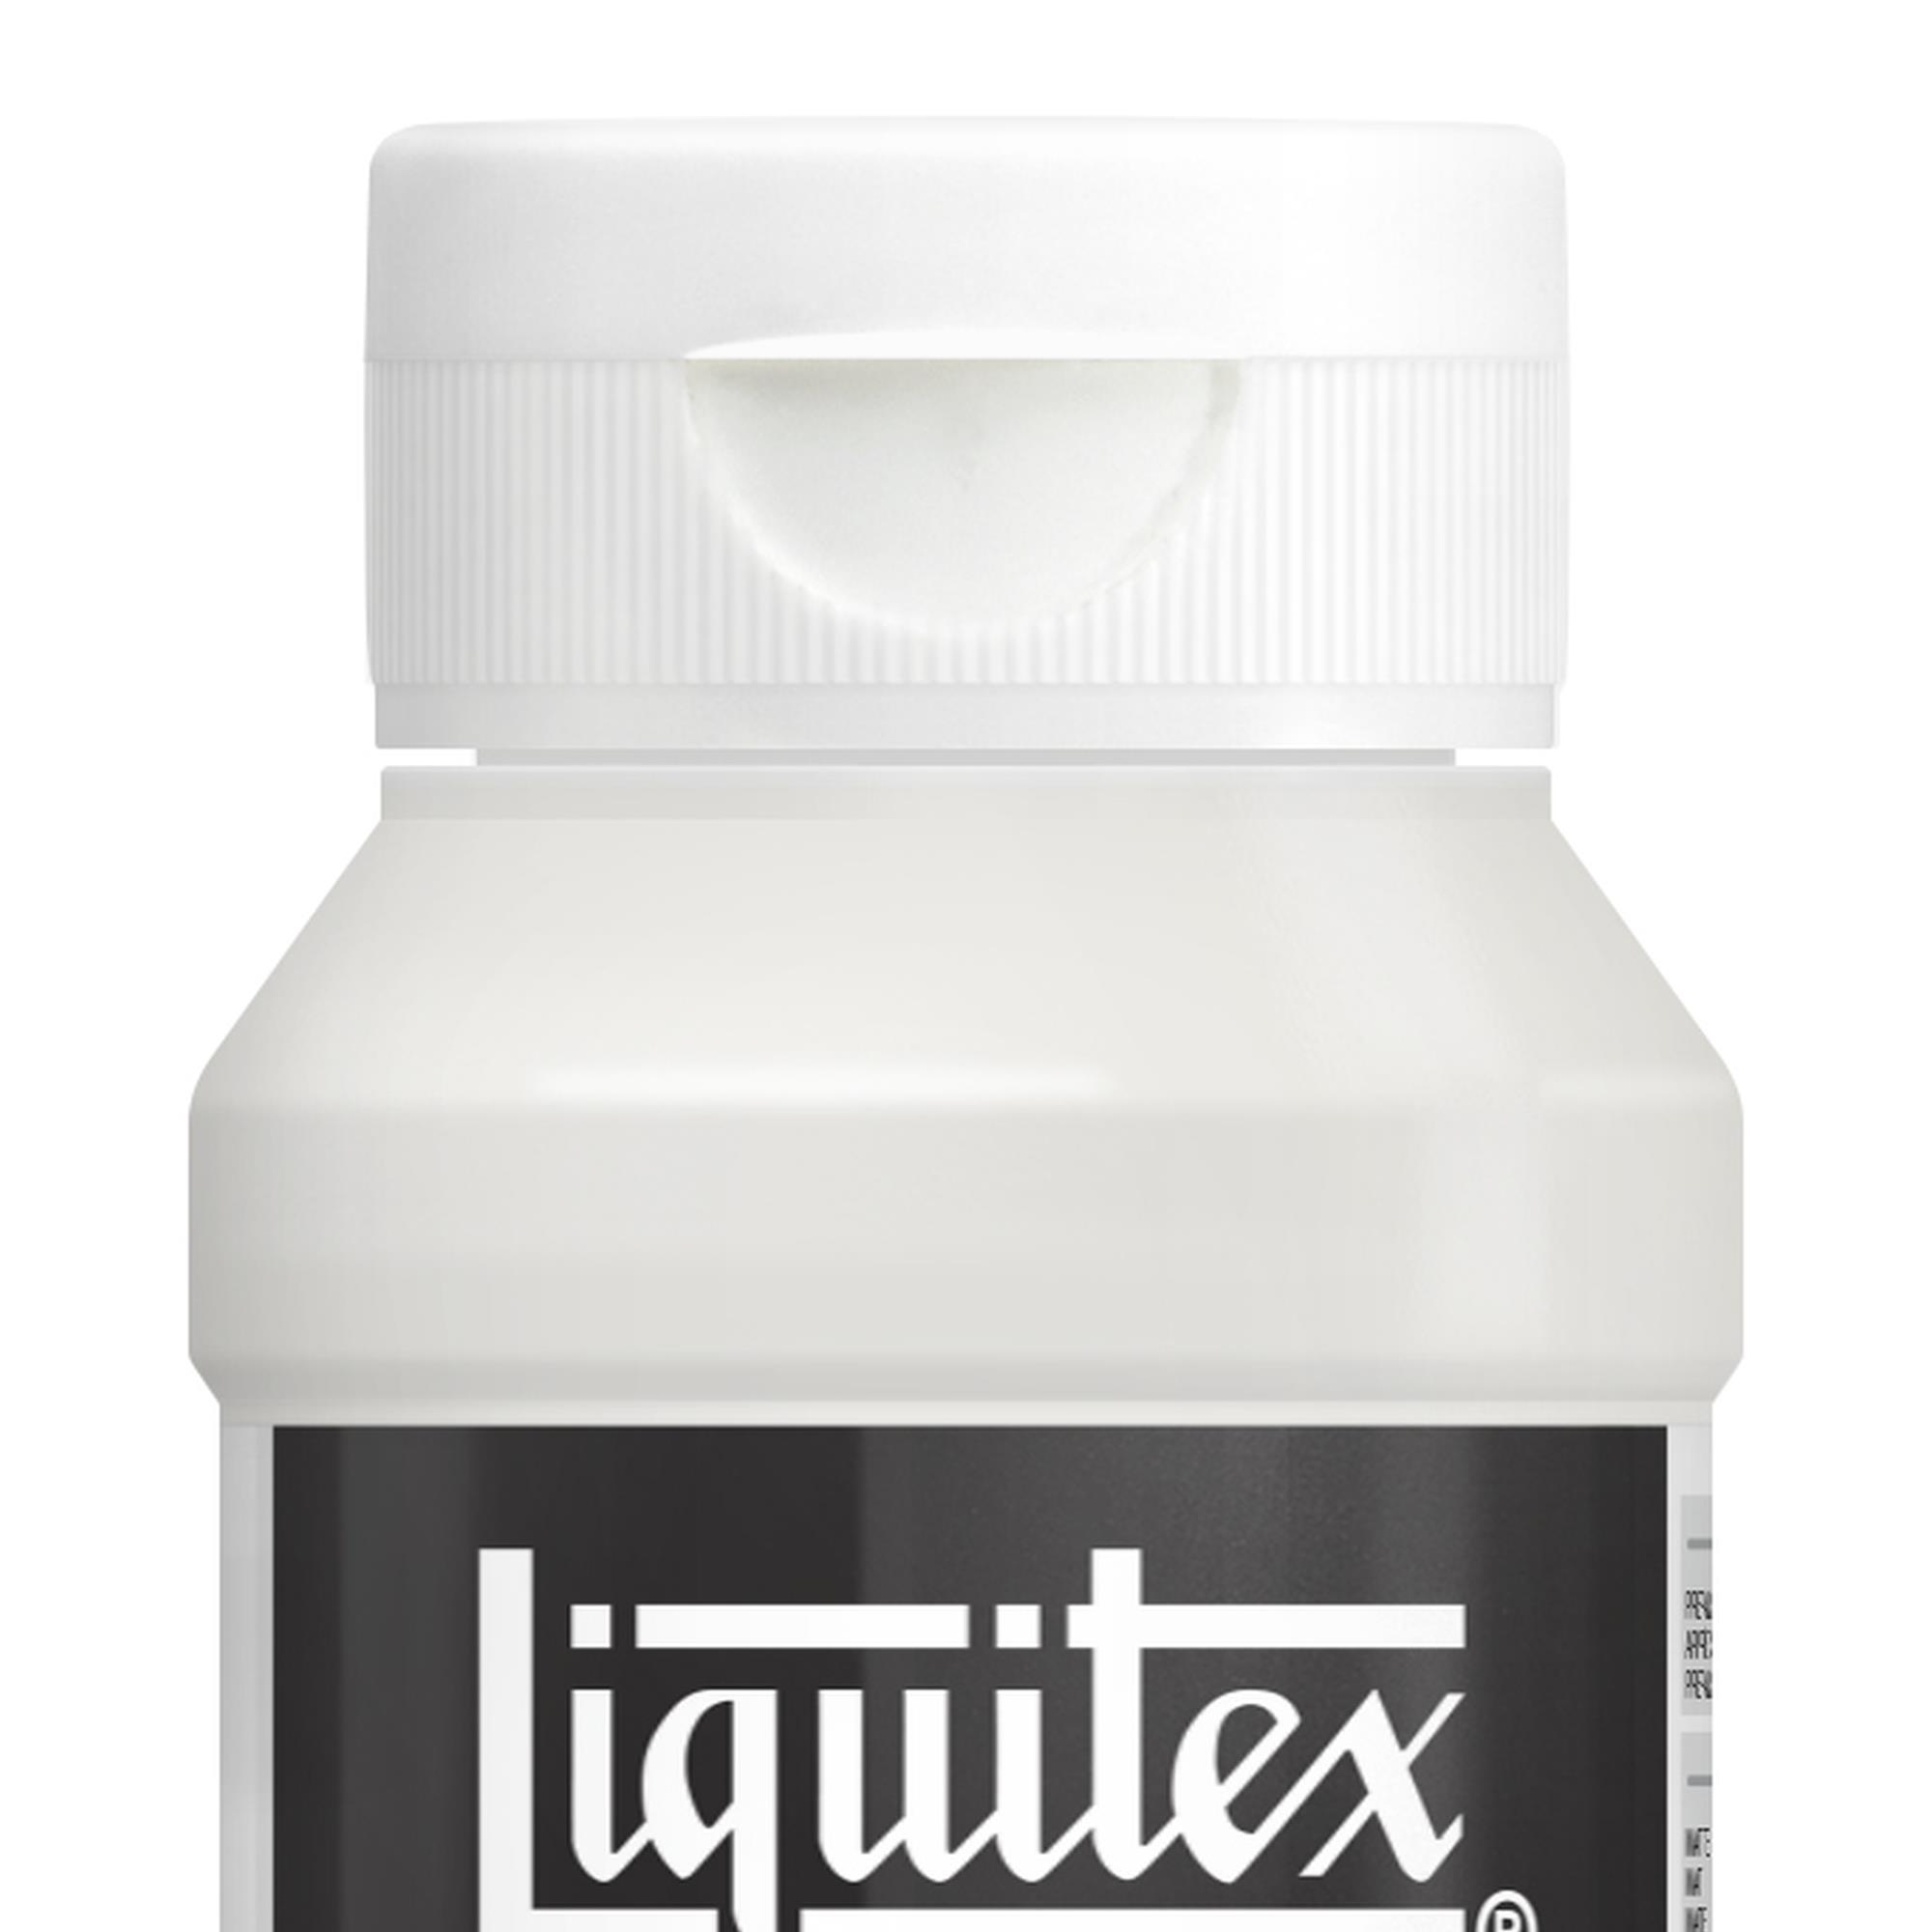 Liquitex Professional Slow-Dri Fluid Retarder Effects Medium, 4-oz